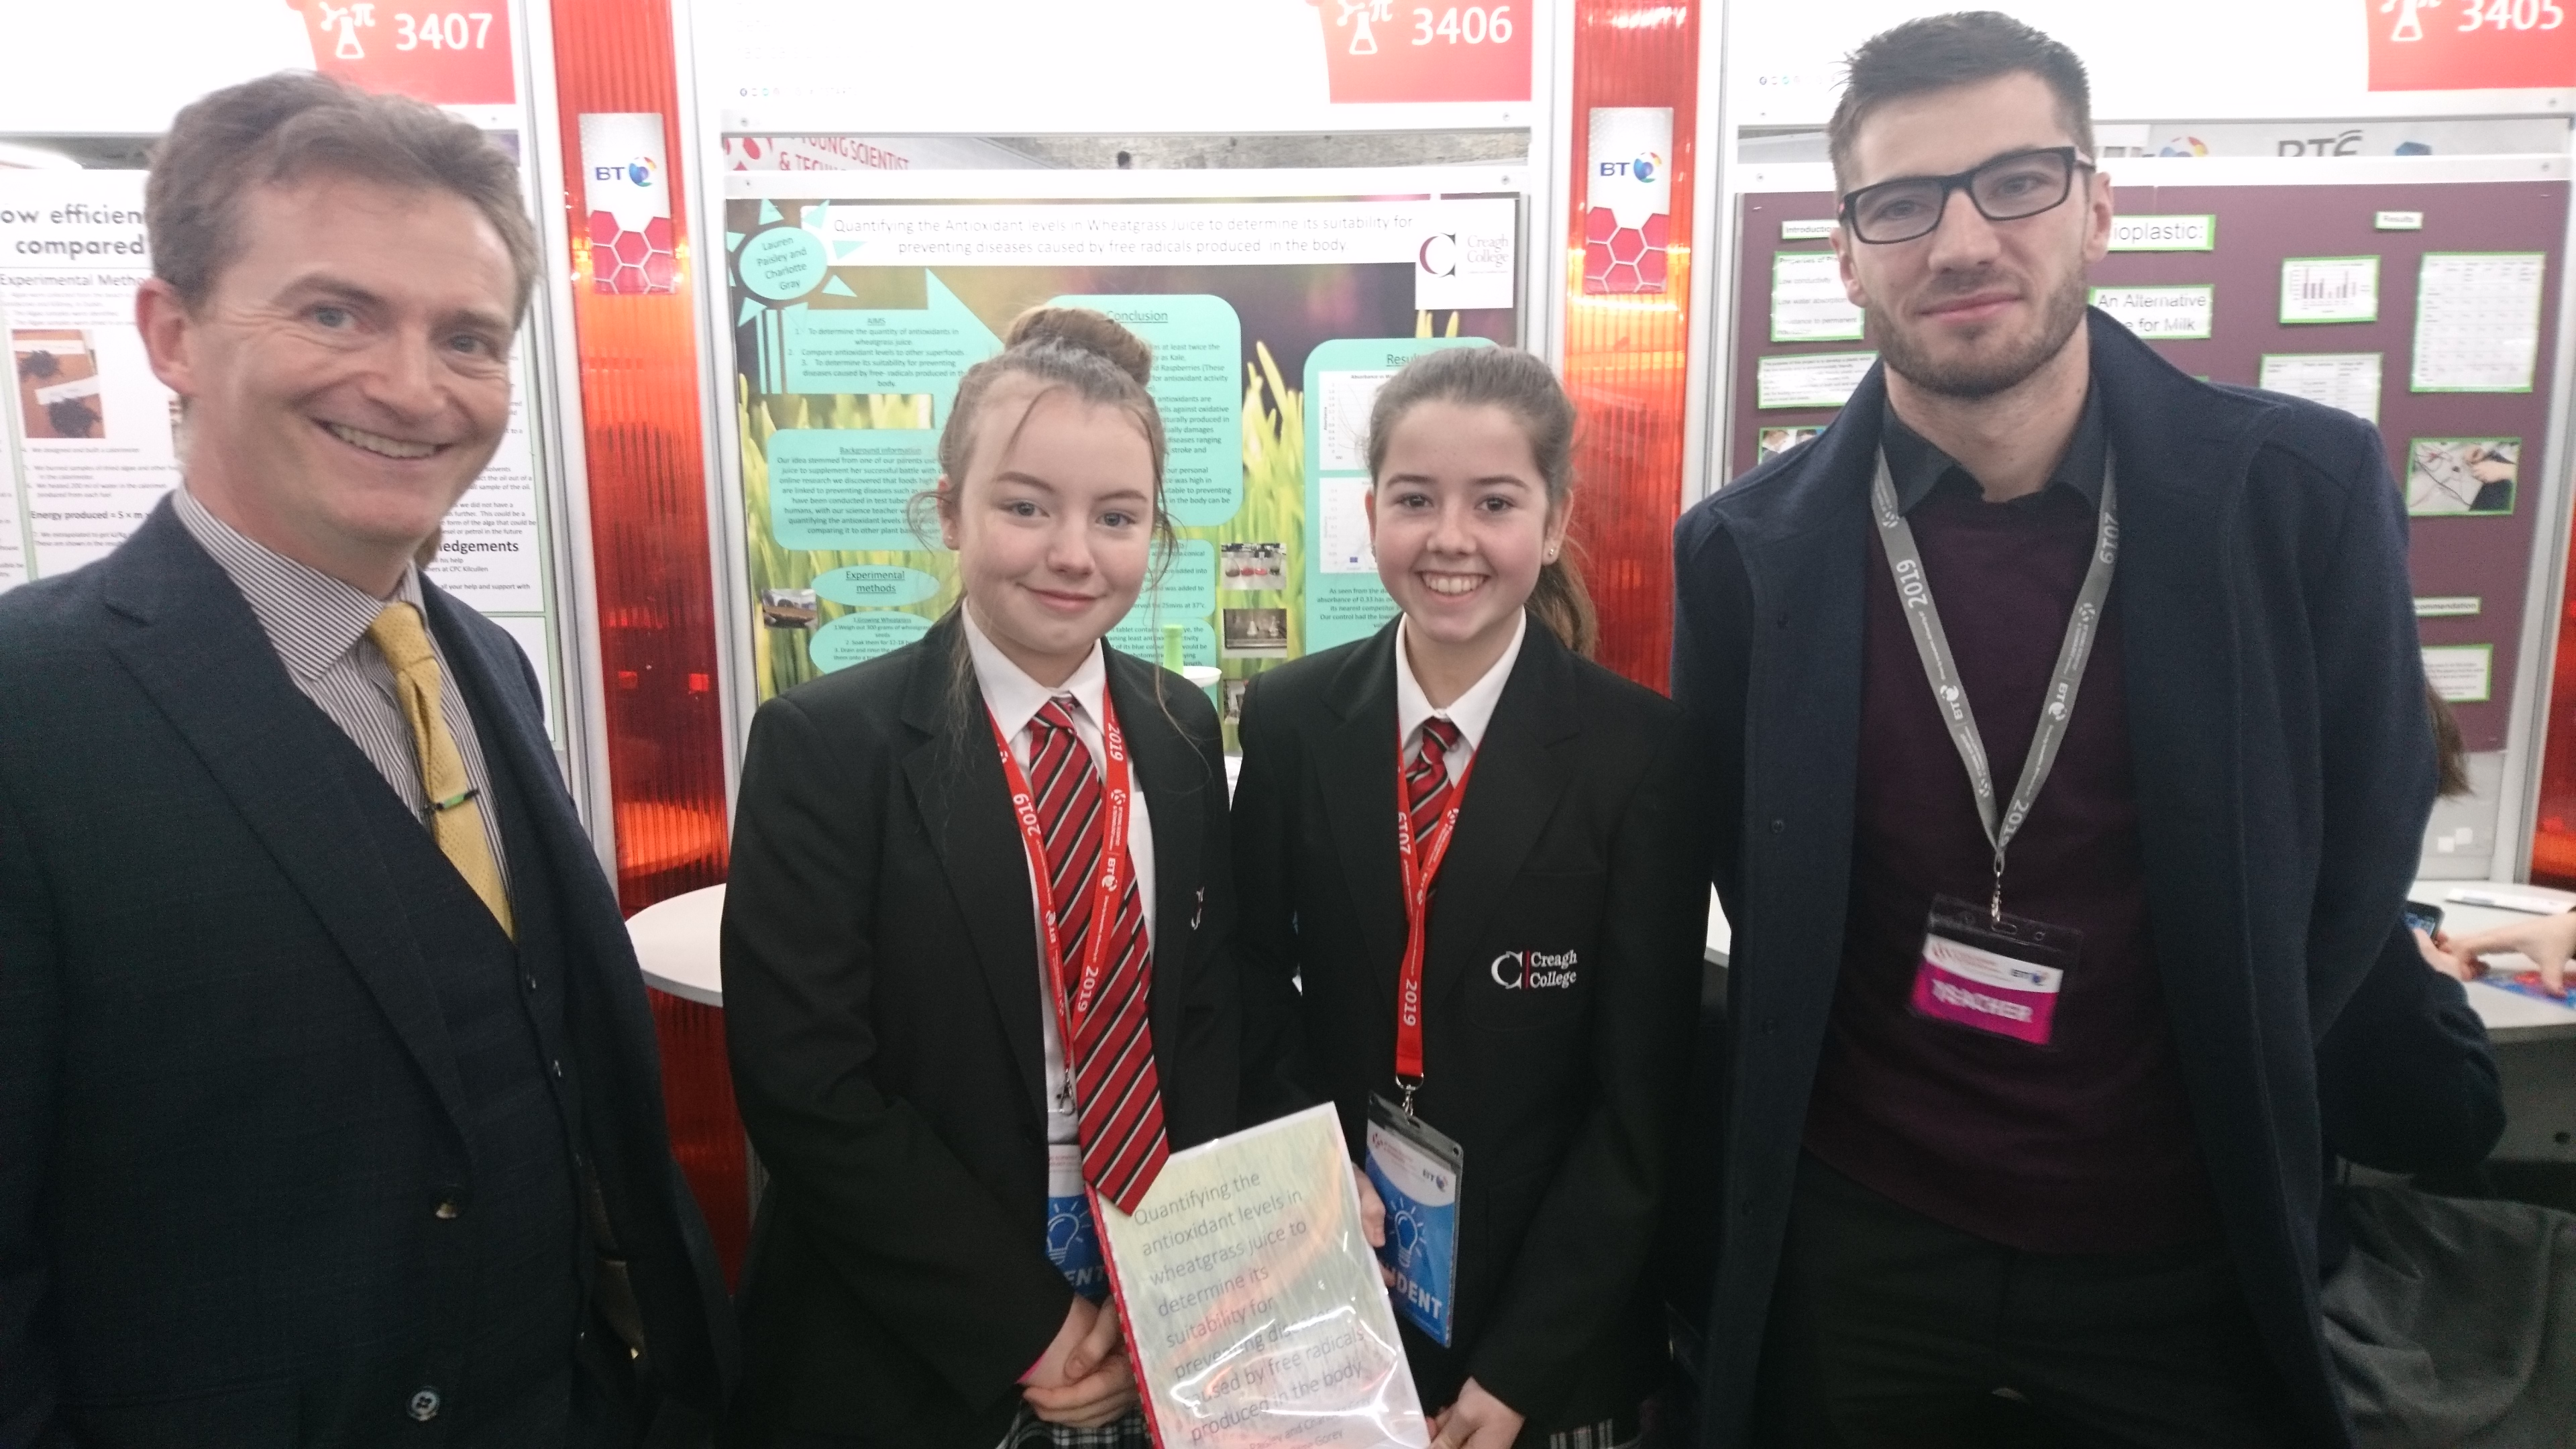 Success at The BT Young Scientist